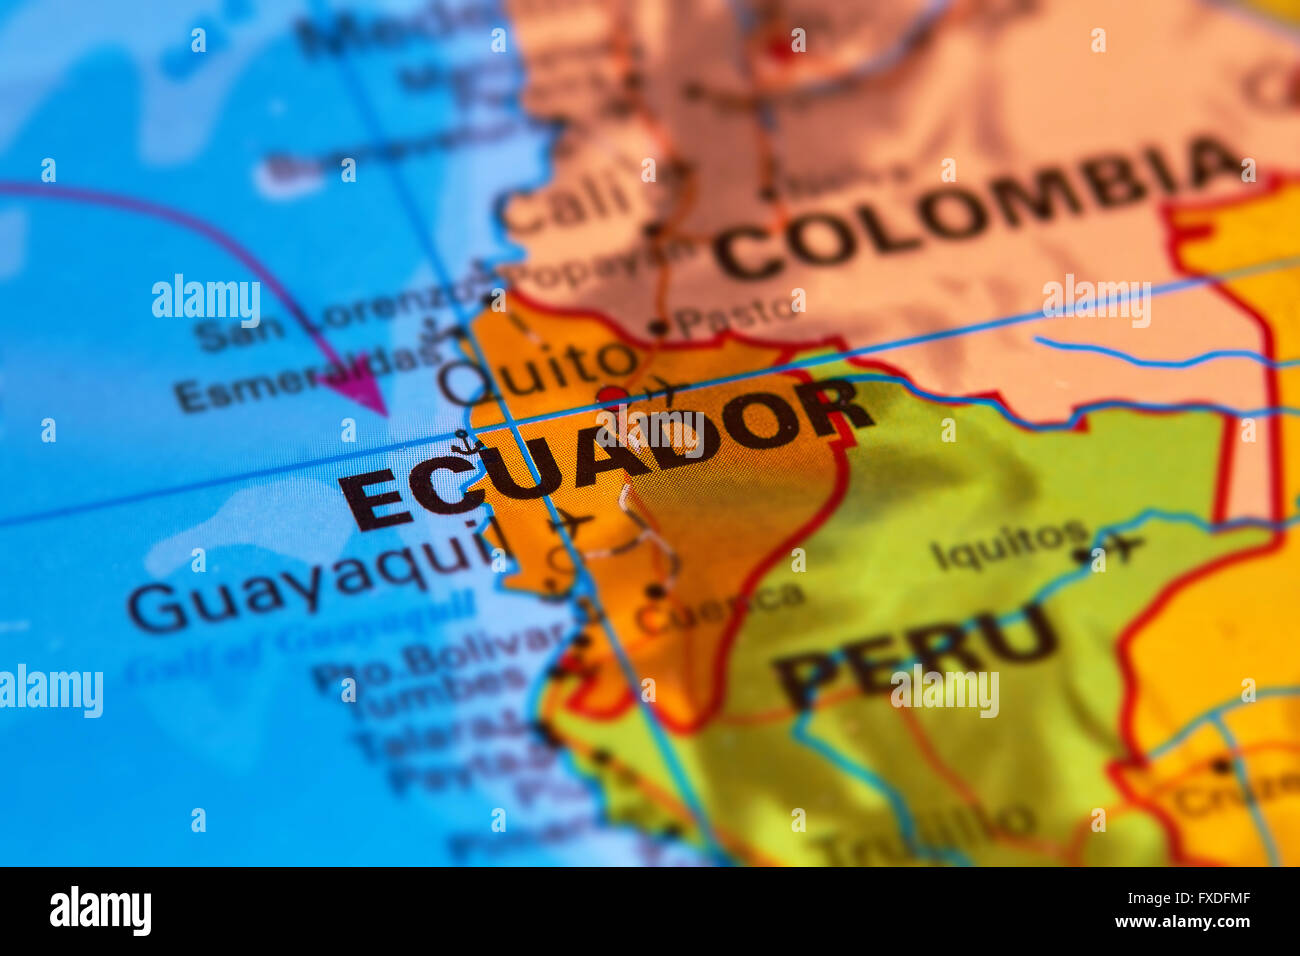 Ecuador and capital city quito on the world map stock photo ecuador and capital city quito on the world map gumiabroncs Choice Image